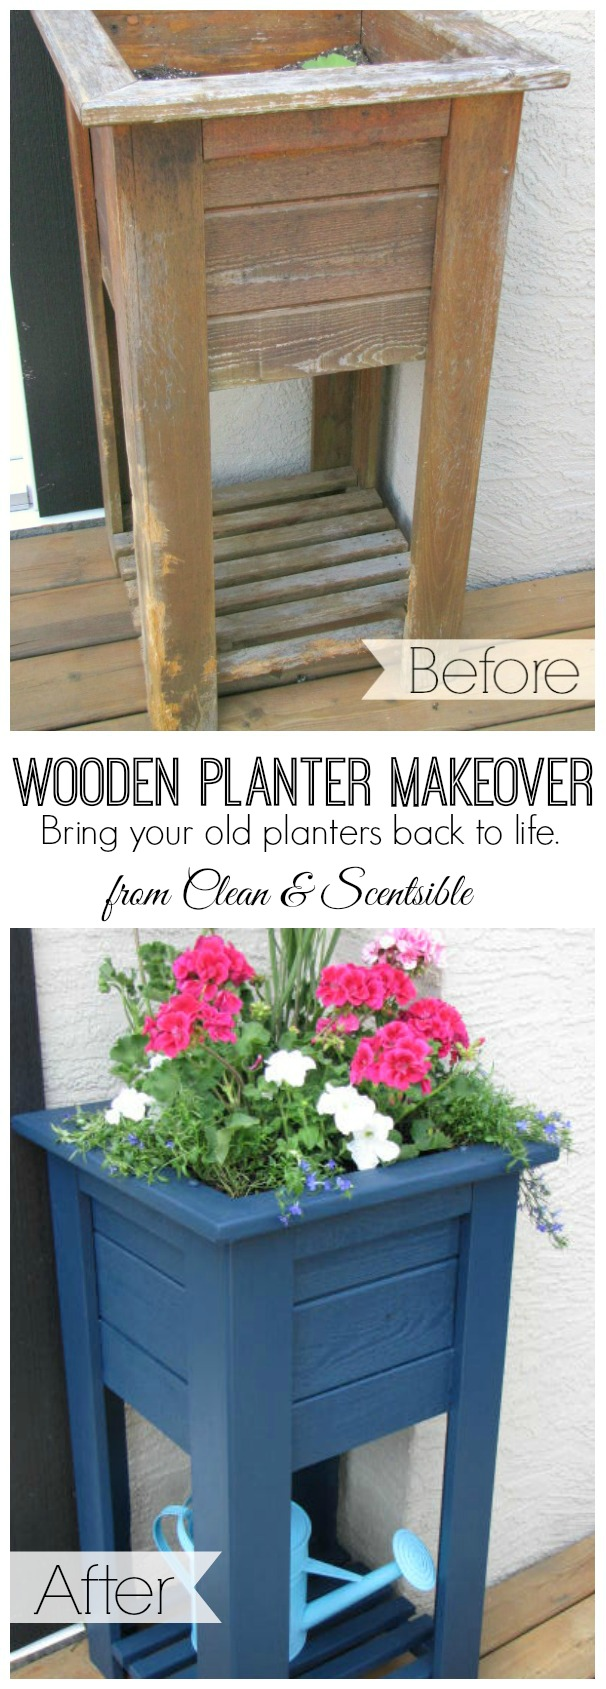 Bring your old wood planters back to life with paint!